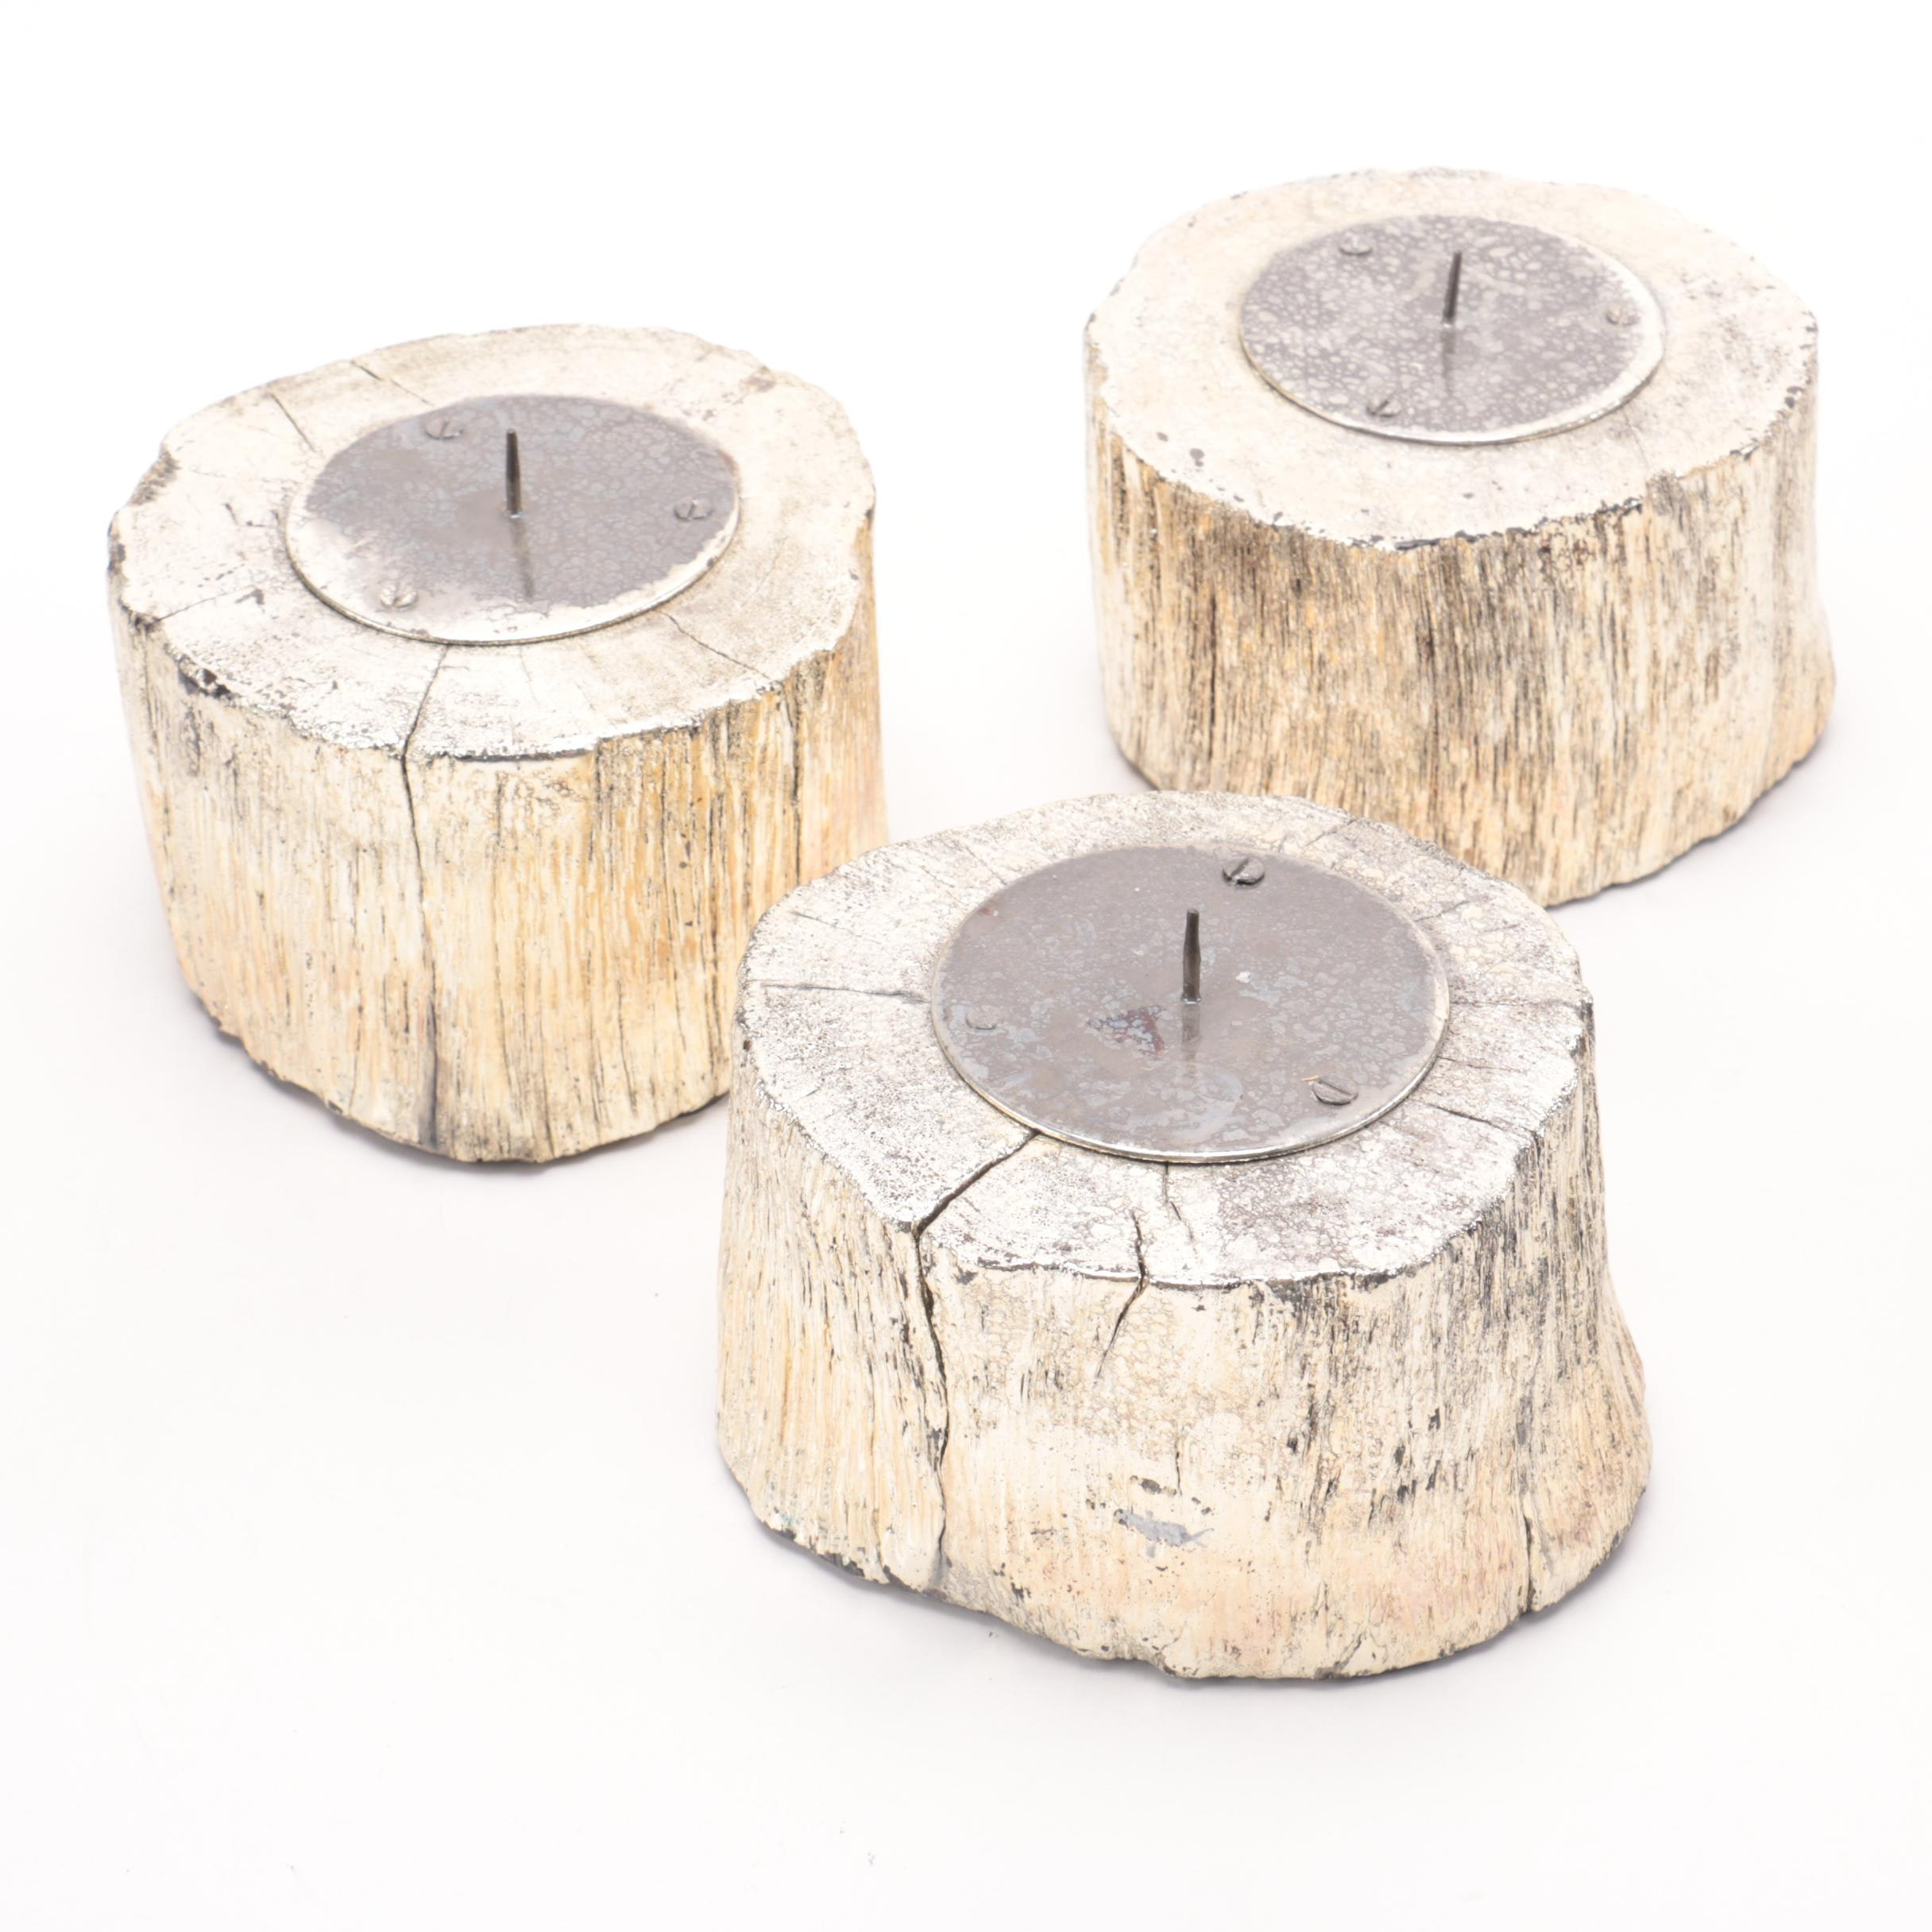 Three White Pillar Candles with Gold Tone Wooden Stands